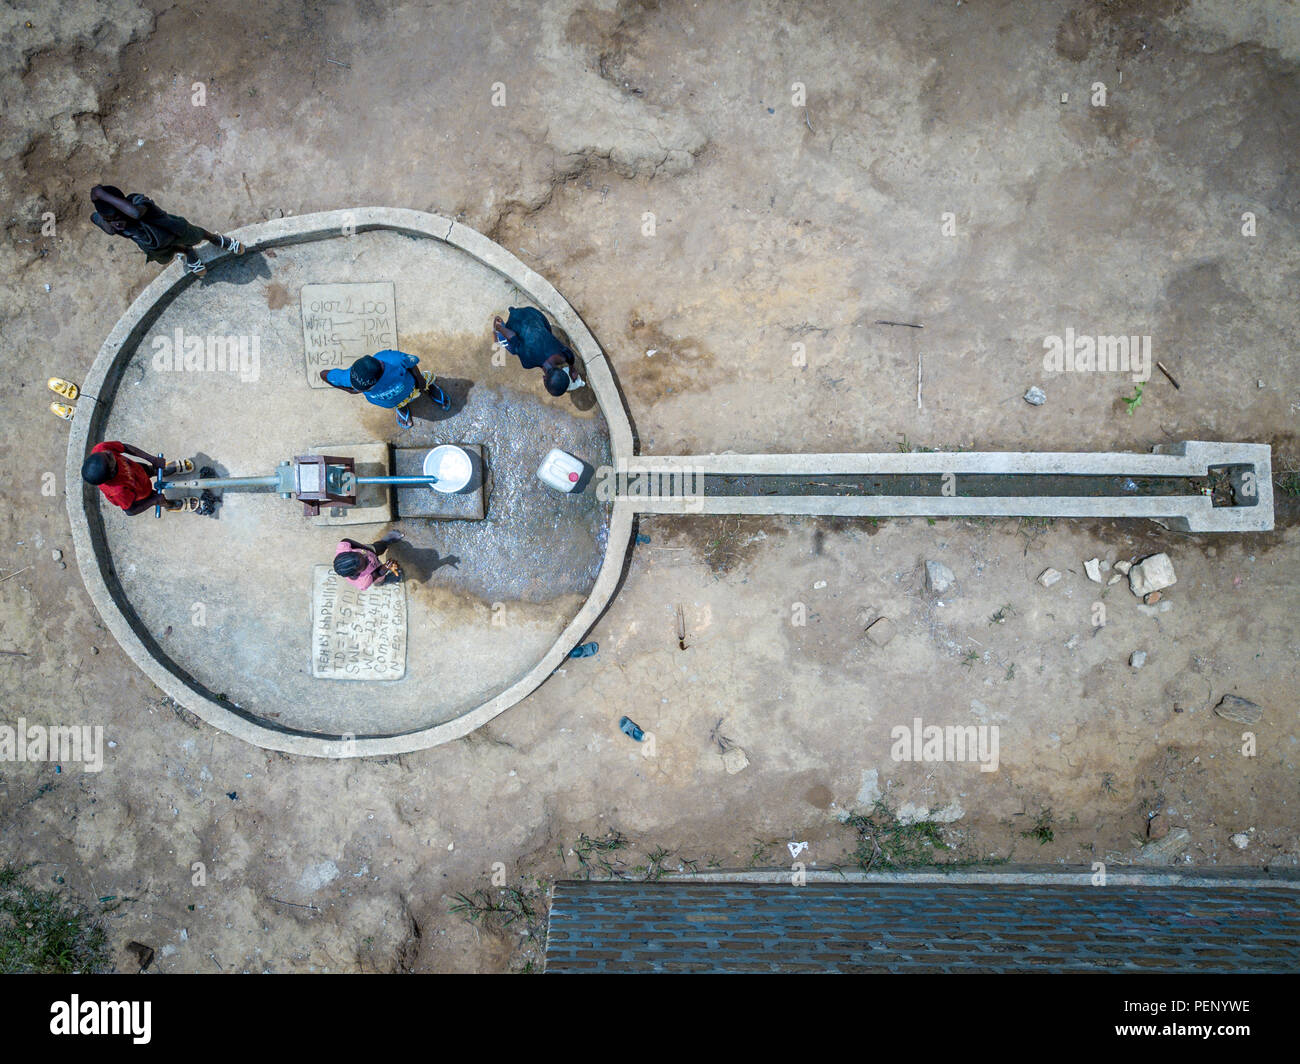 Aerial image of children pumping water at a school in Ganta, Liberia - Stock Image